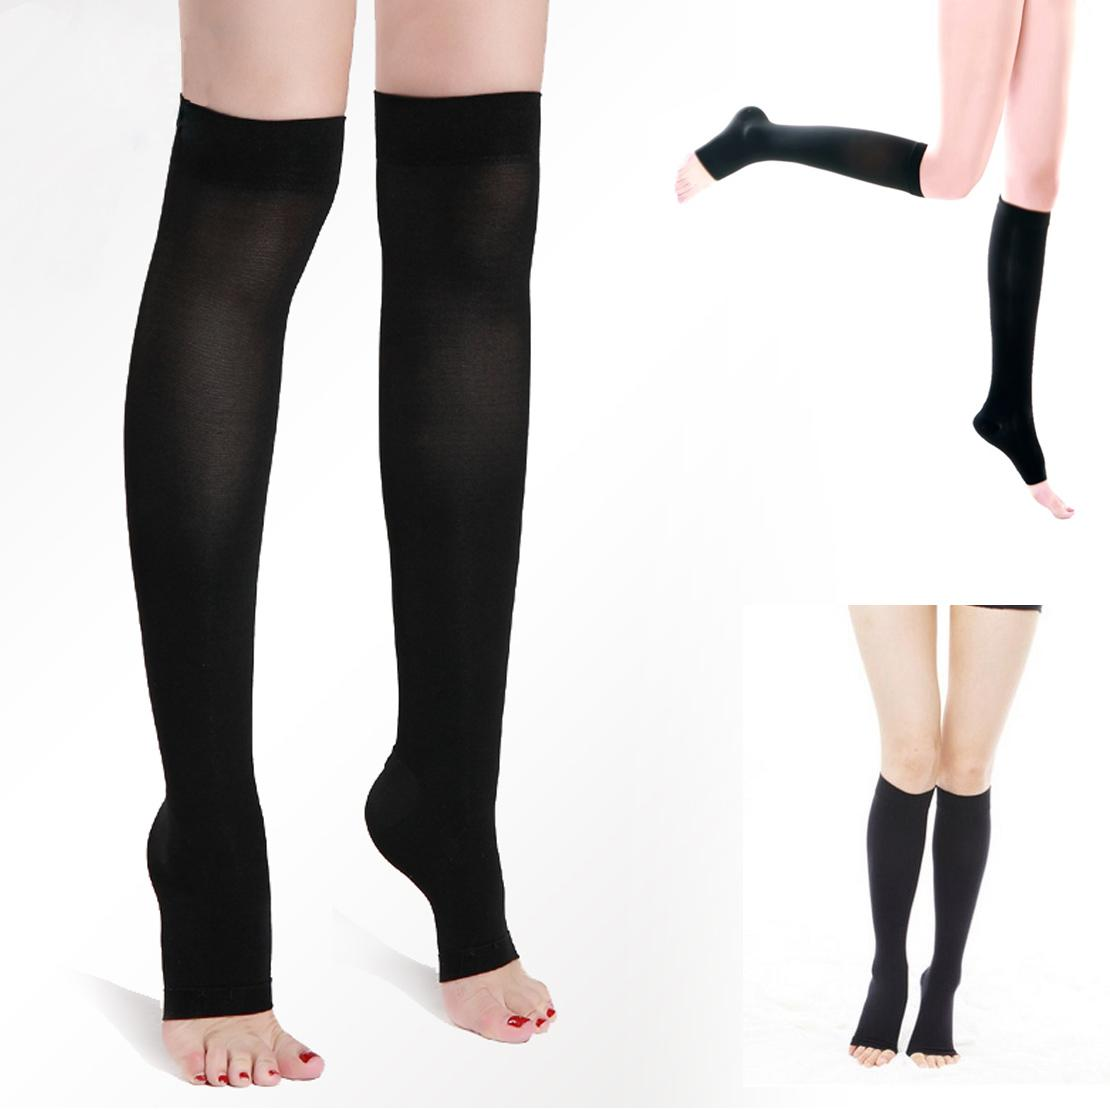 5f0fd639941 New Women Acrylon Knee High Compression Slim Thin Leg 30 40 Mmhg Supports  Open Toe Varicose Veins Shaping Stockings Shapewear Leggings Slimmer Thighs  From ...